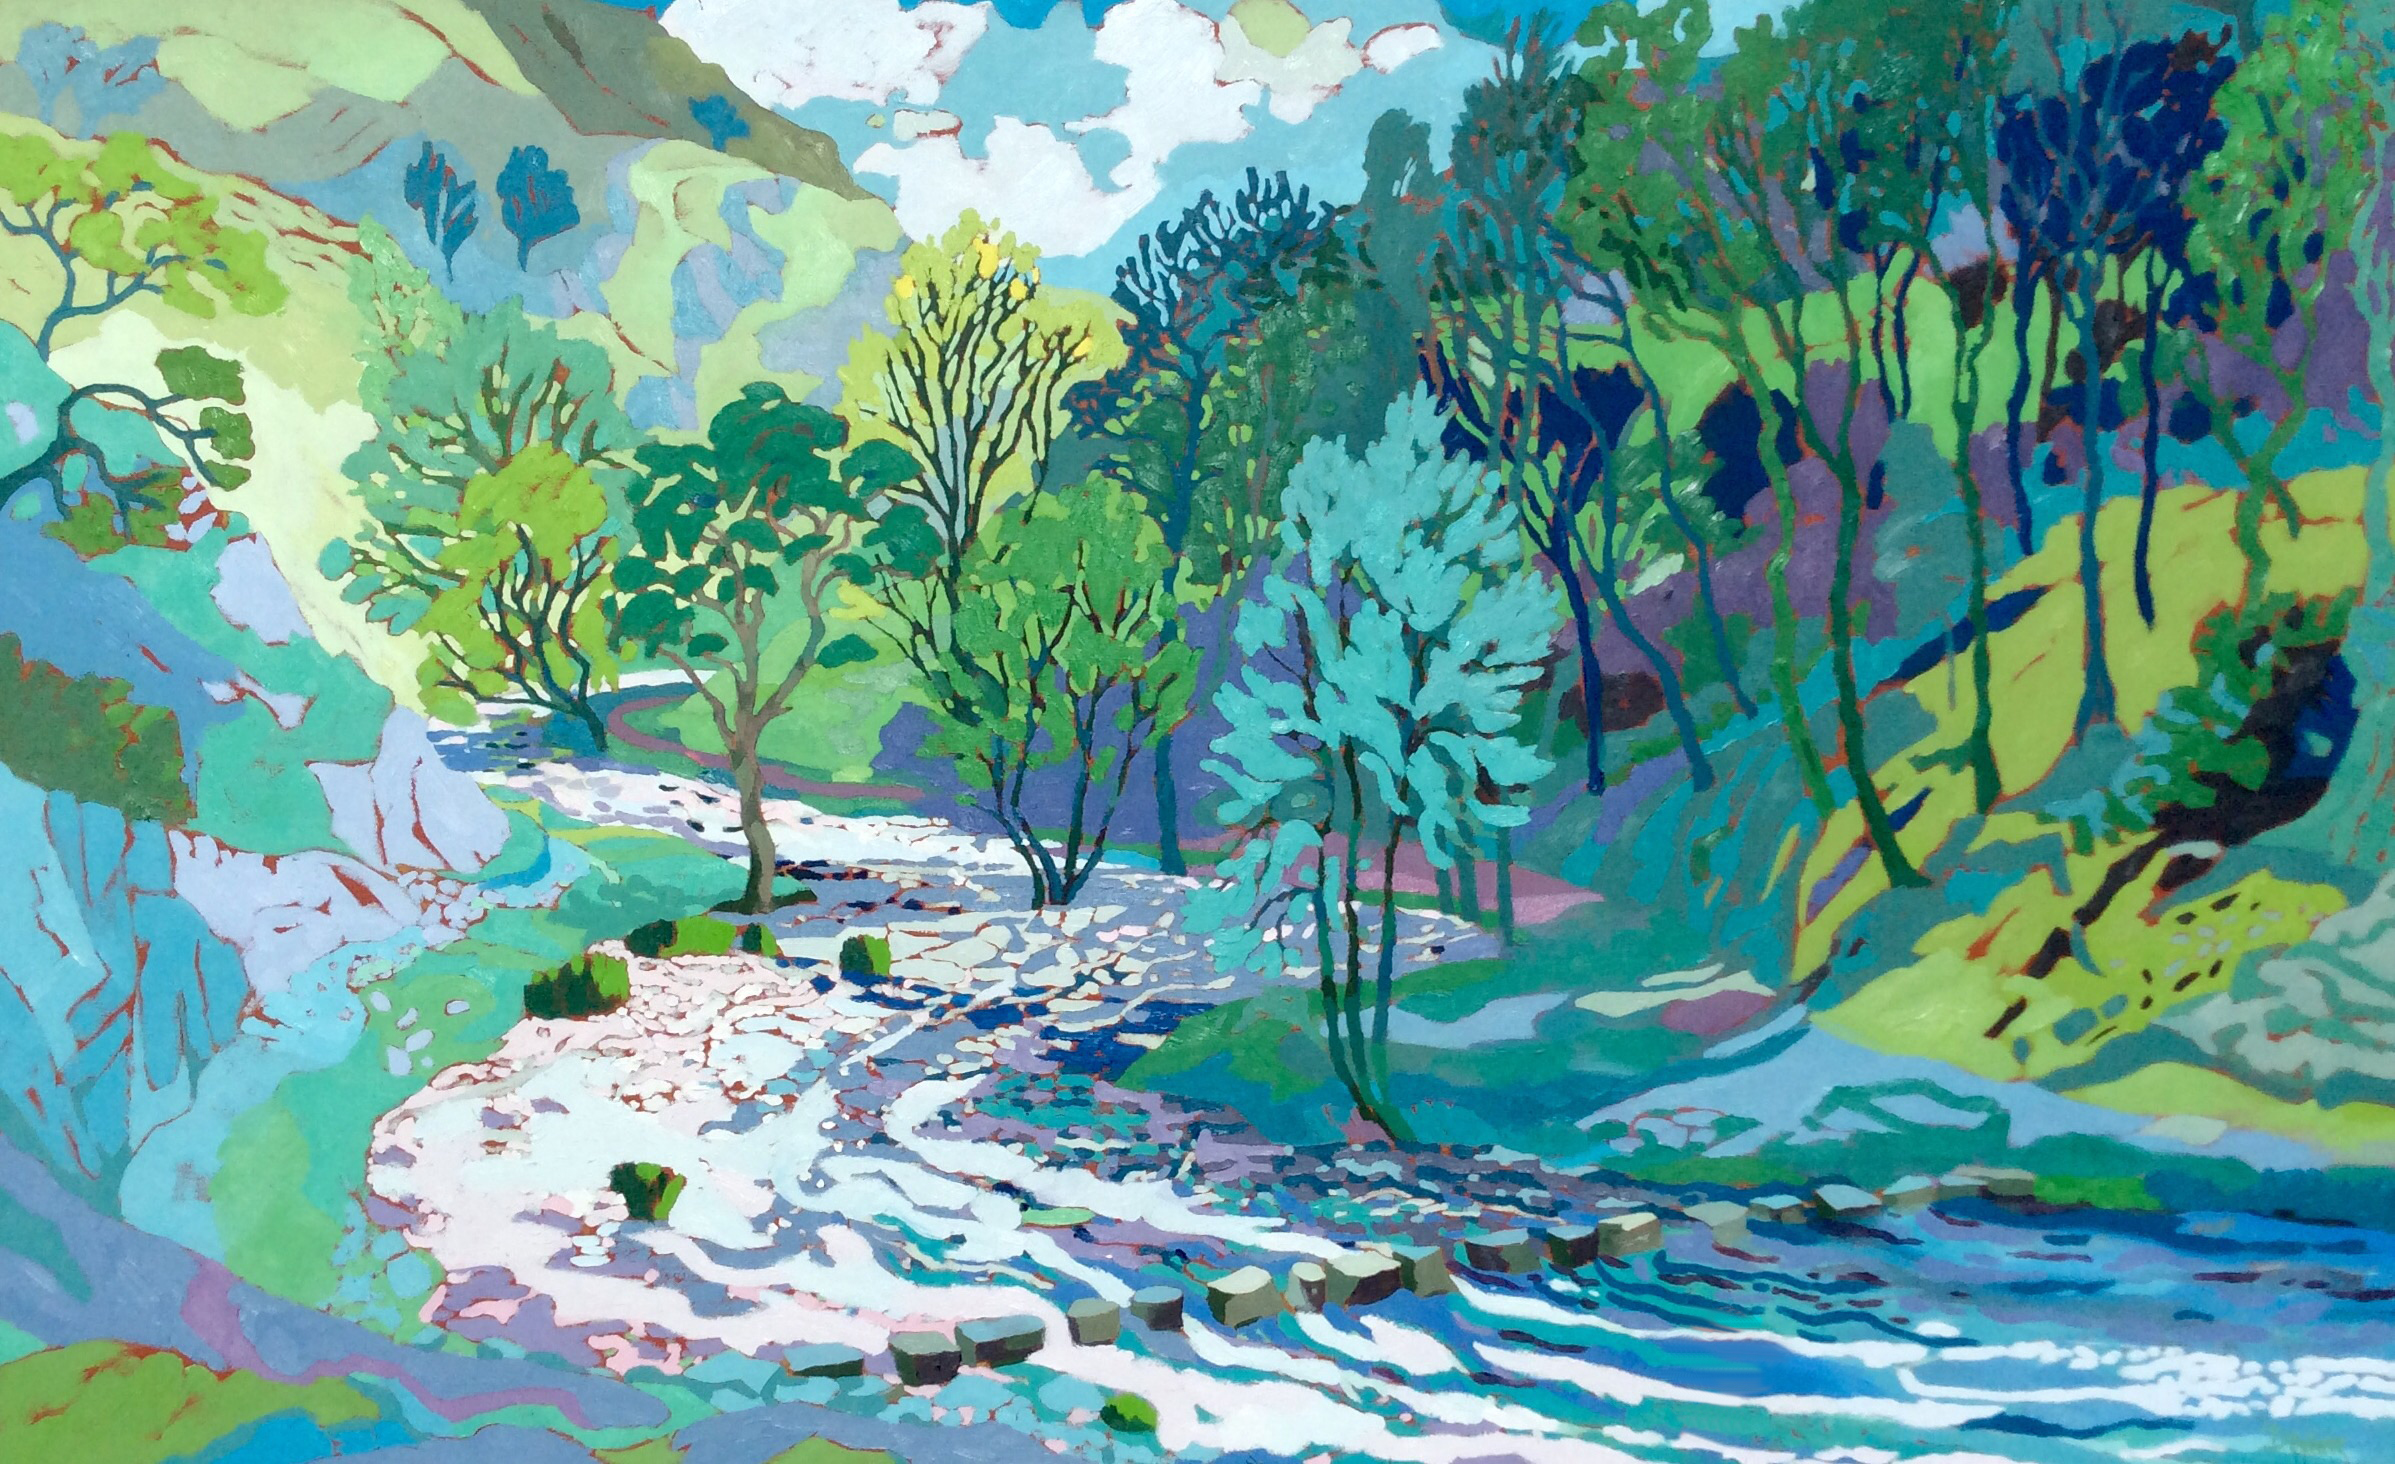 Dovedale Stepping Stones. Oil on canvas. 100 x 161.5 cm. (Sold)